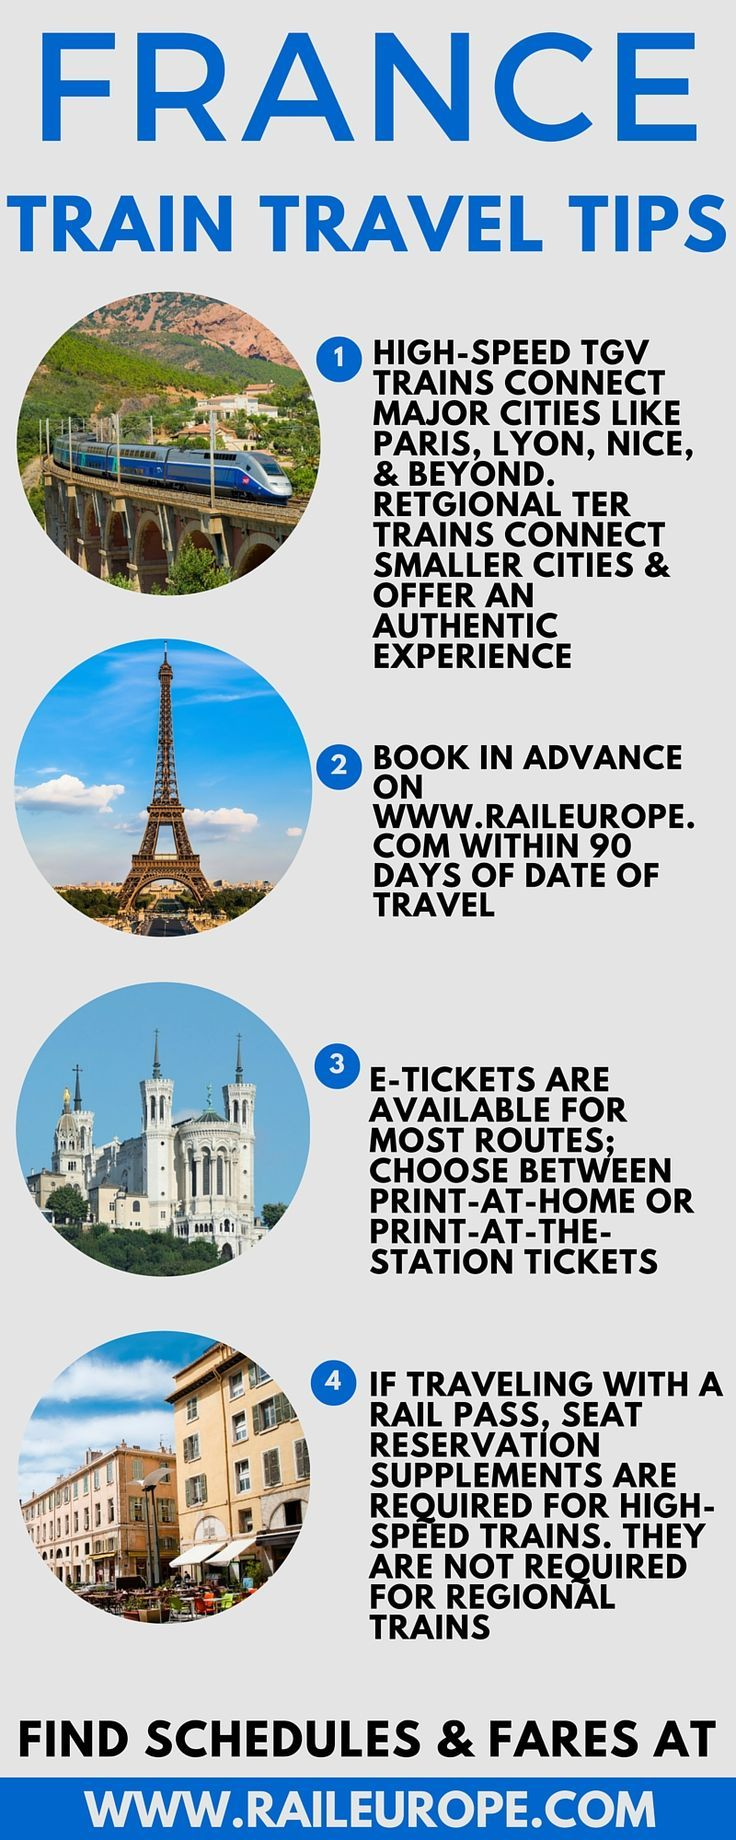 Ever dreamed of traveling through #France by train? Here are a few tips straight from the experts: https://www.raileurope.com/europe-travel-guide/france/index.html